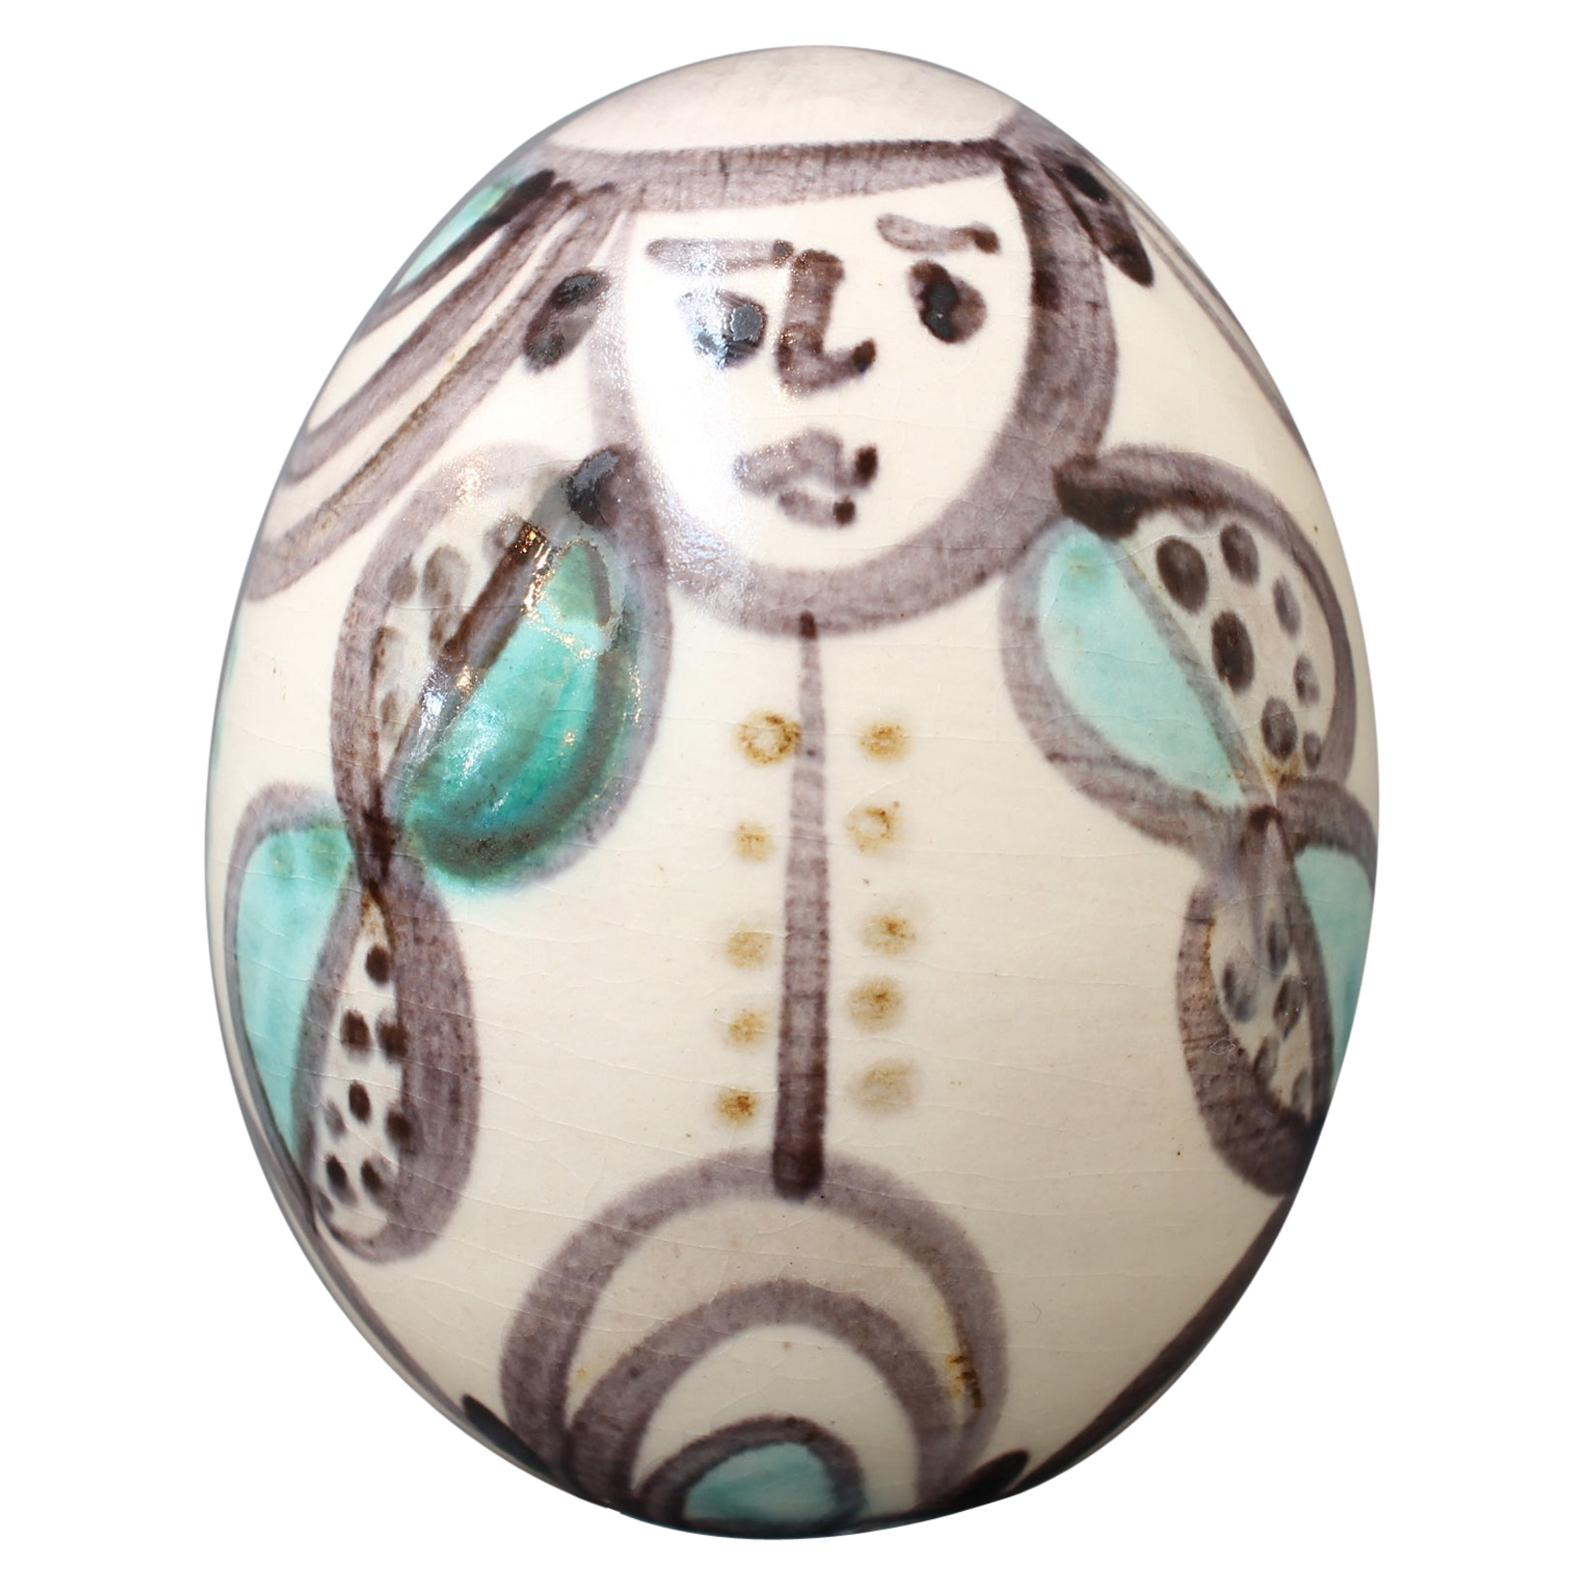 Ceramic Easter Egg from Atelier Madoura, circa 1960s